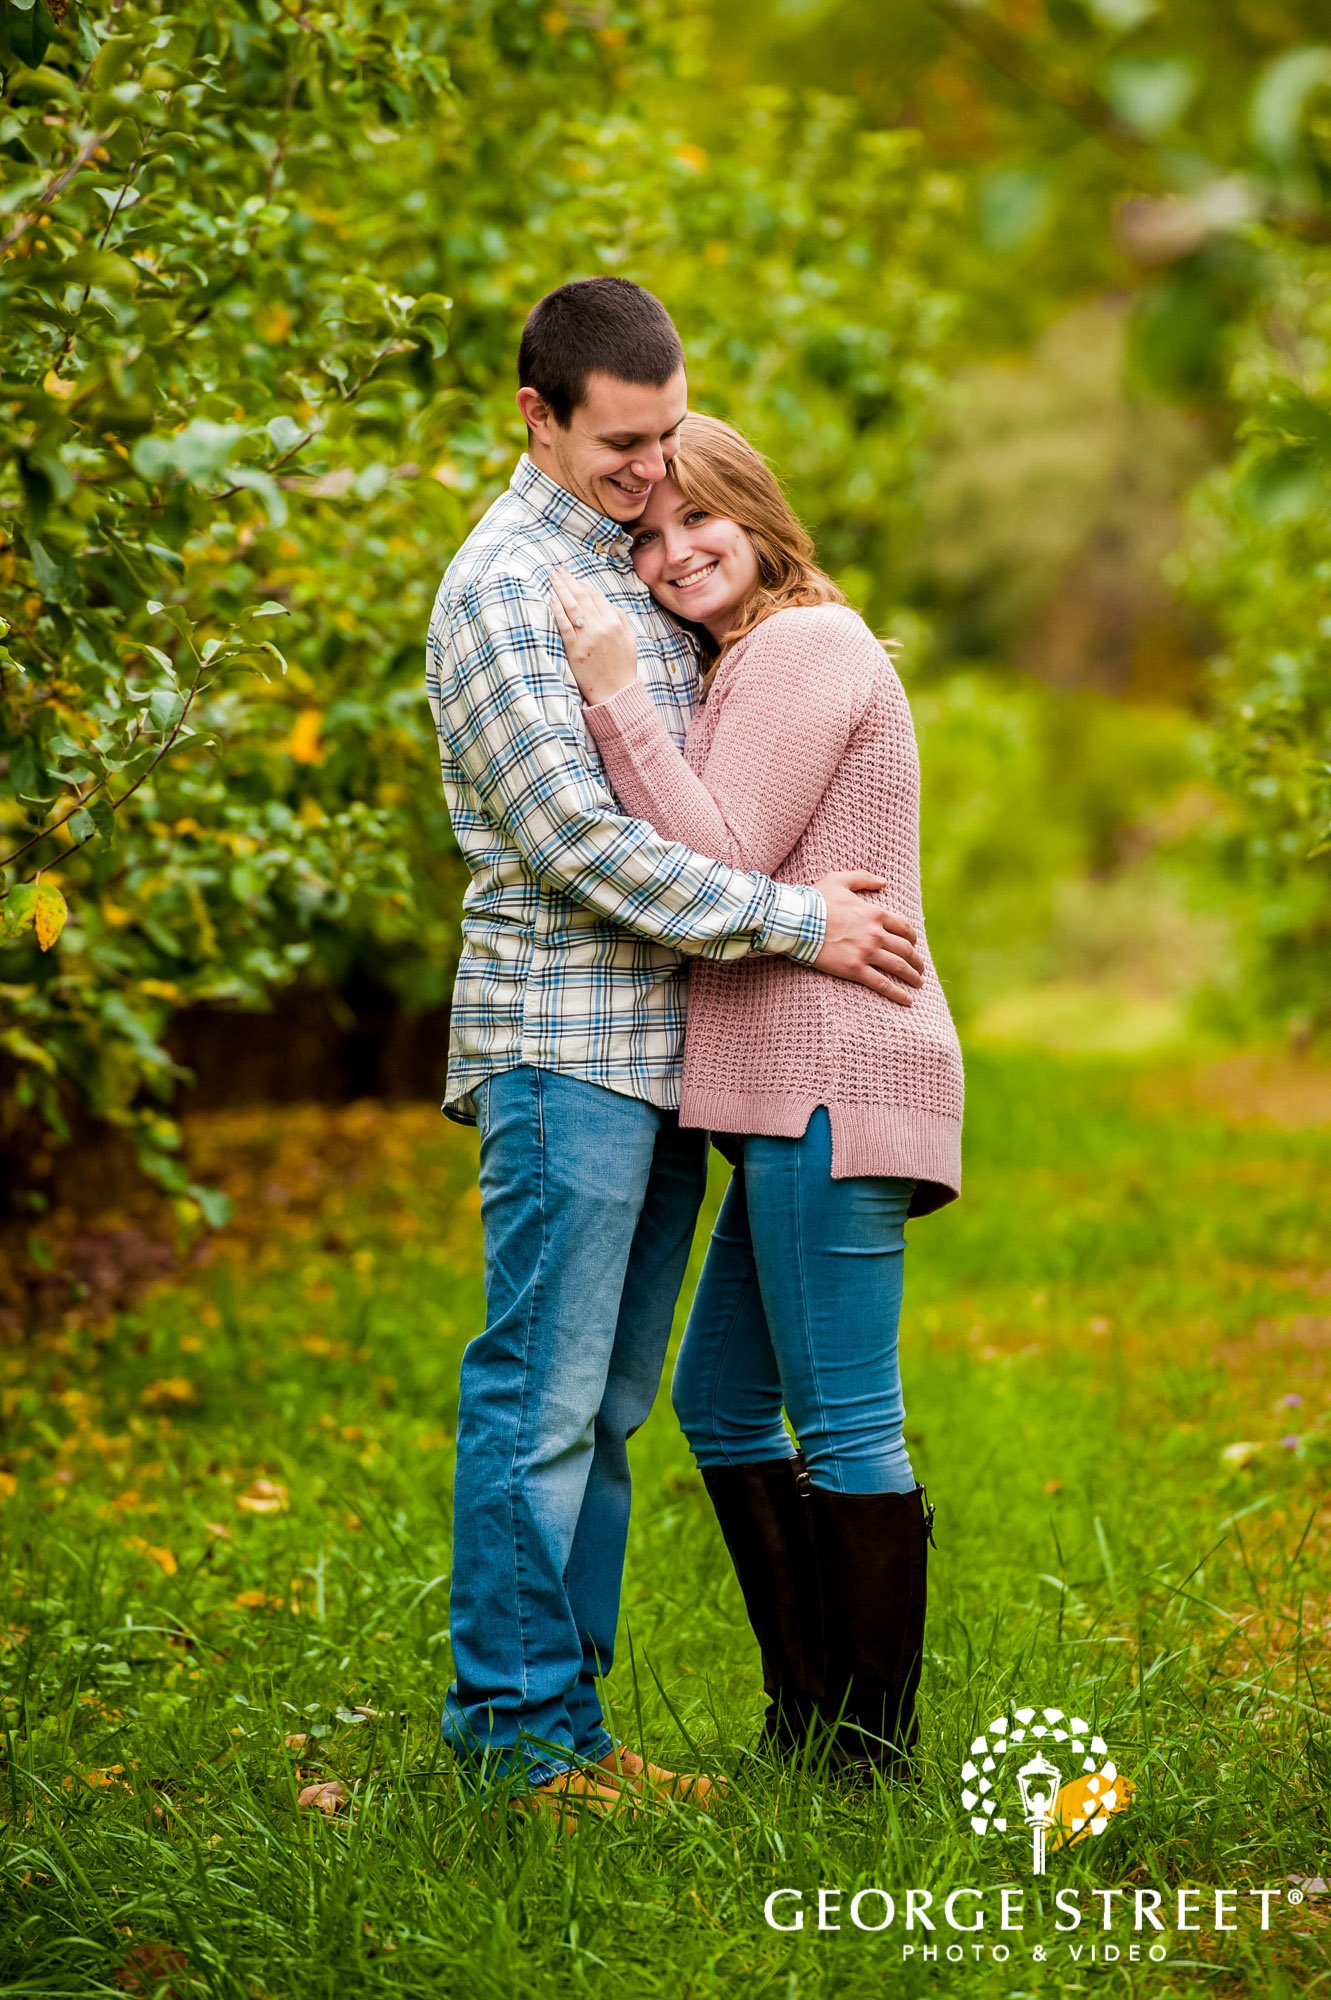 lyman orchards cute greenery sweater hartford engagement photography 9